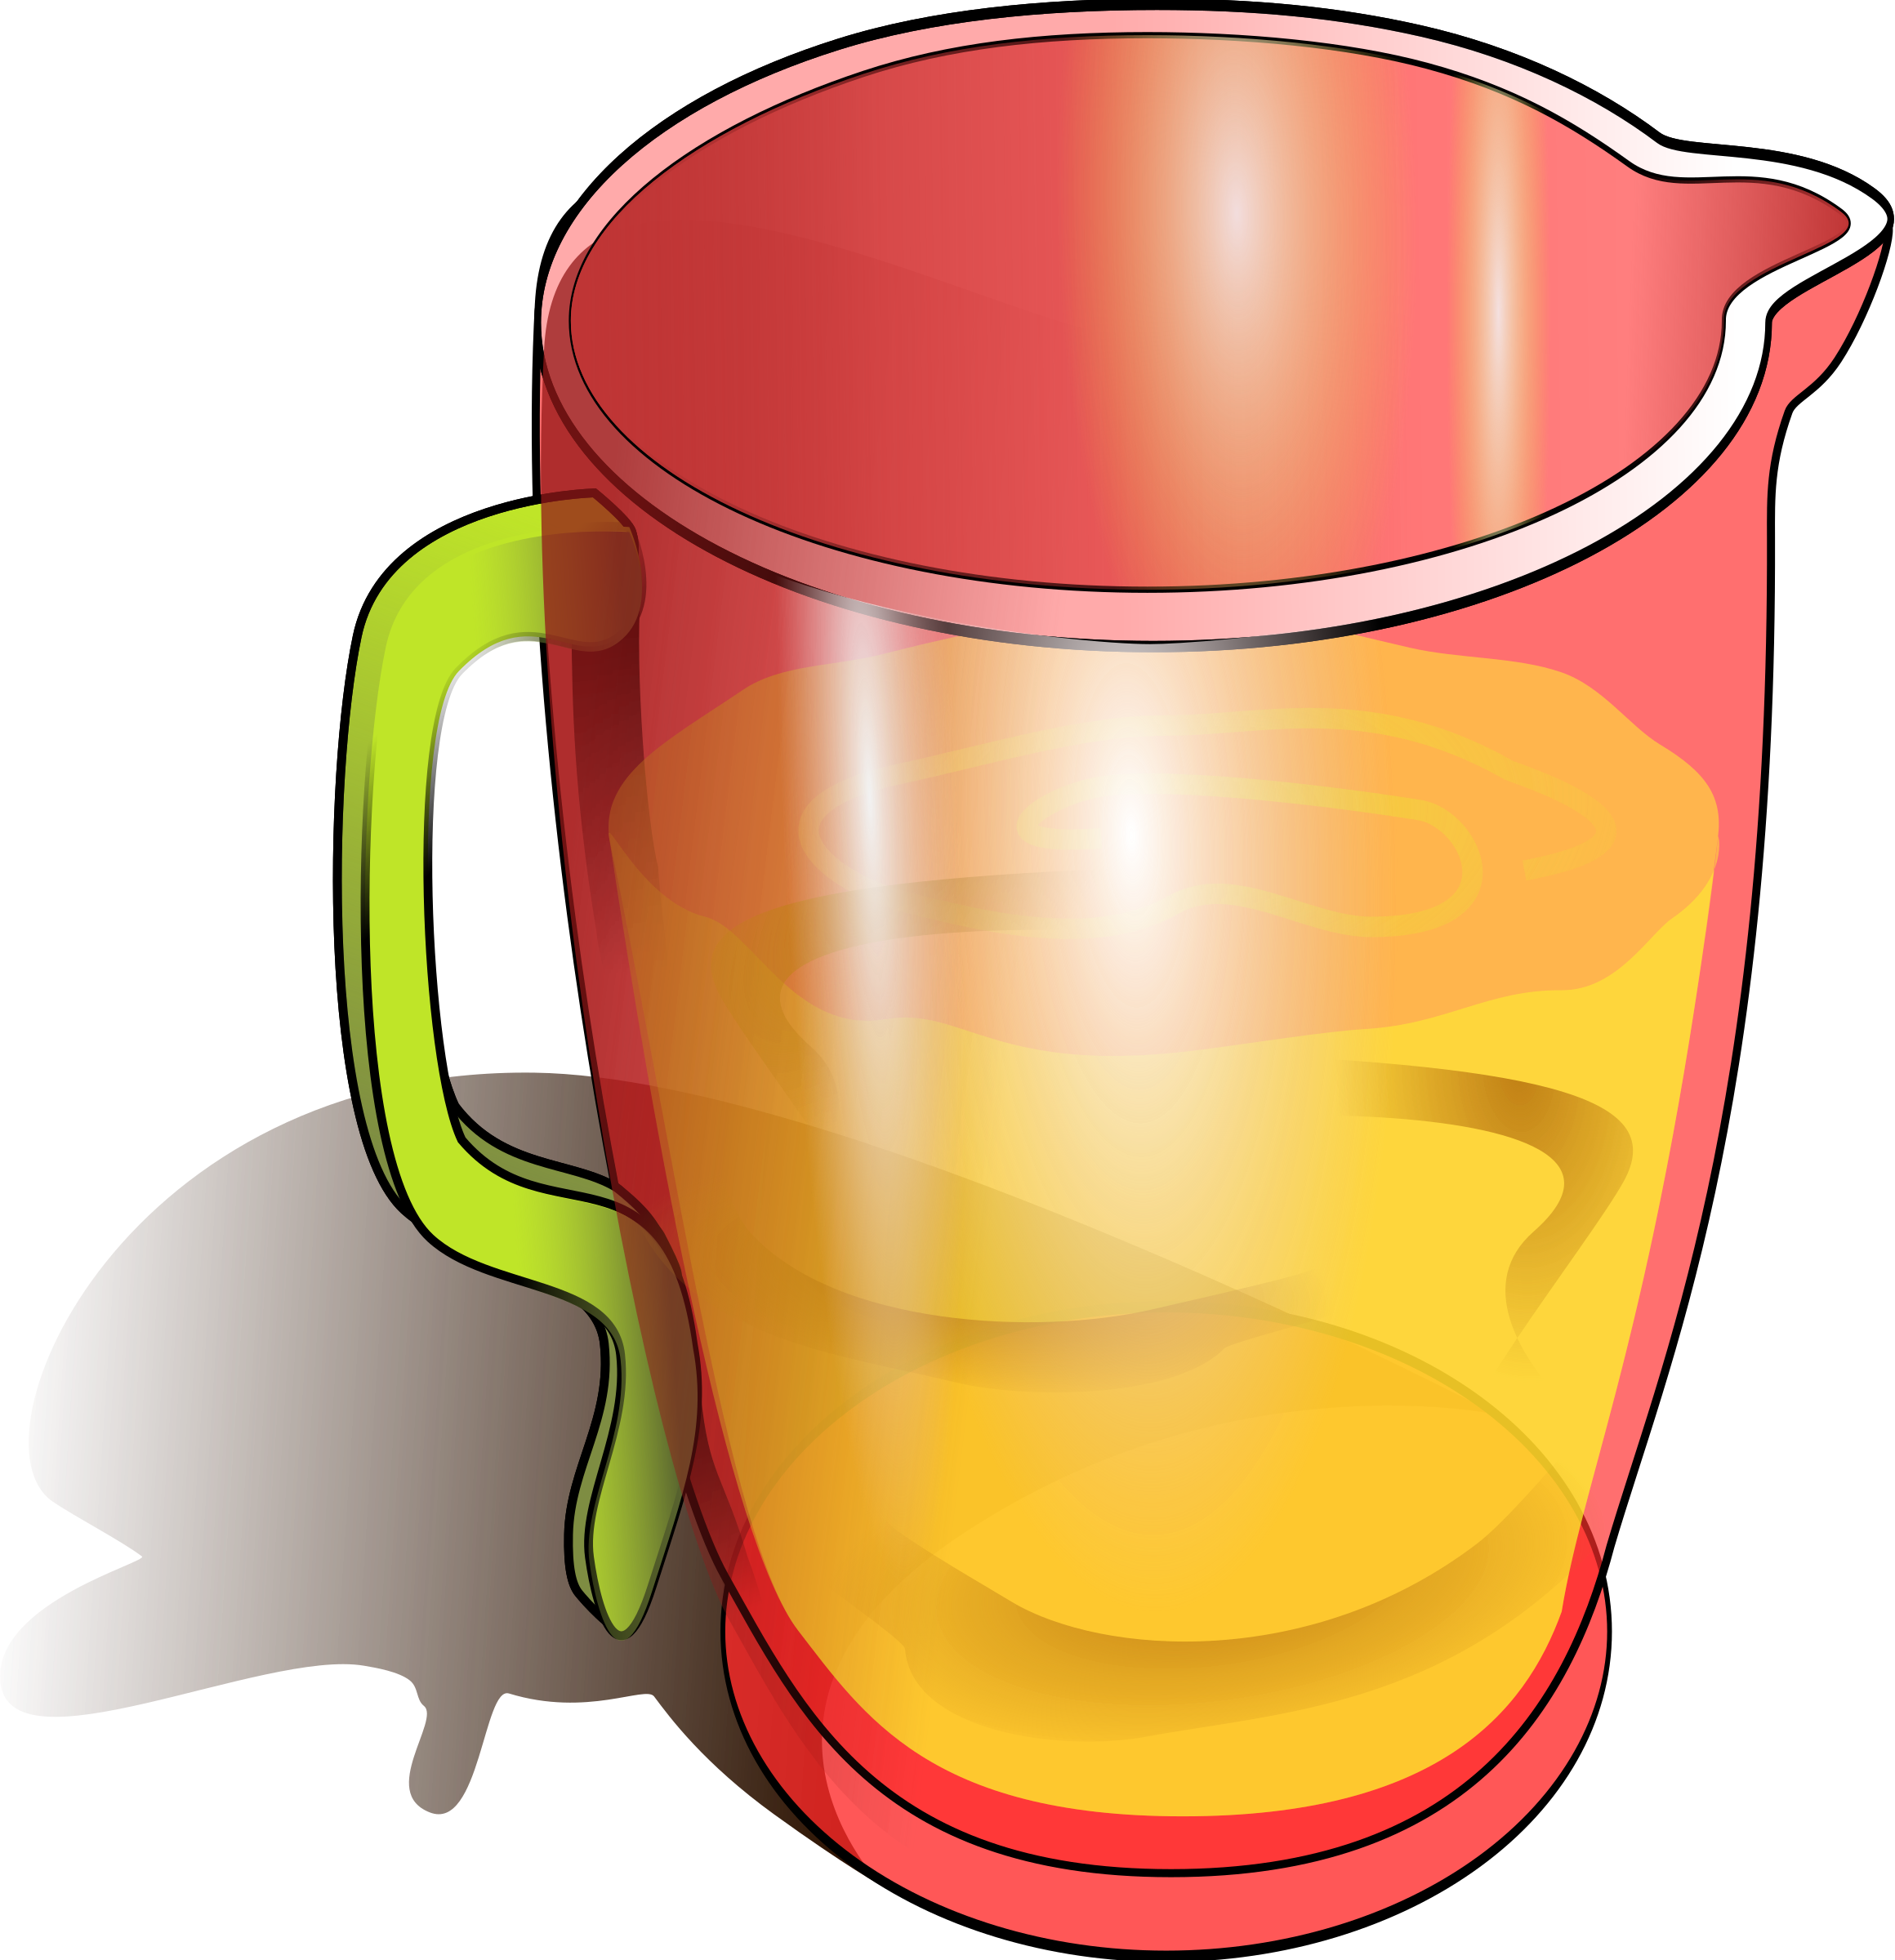 Line Drawing Jug : Clipart jug